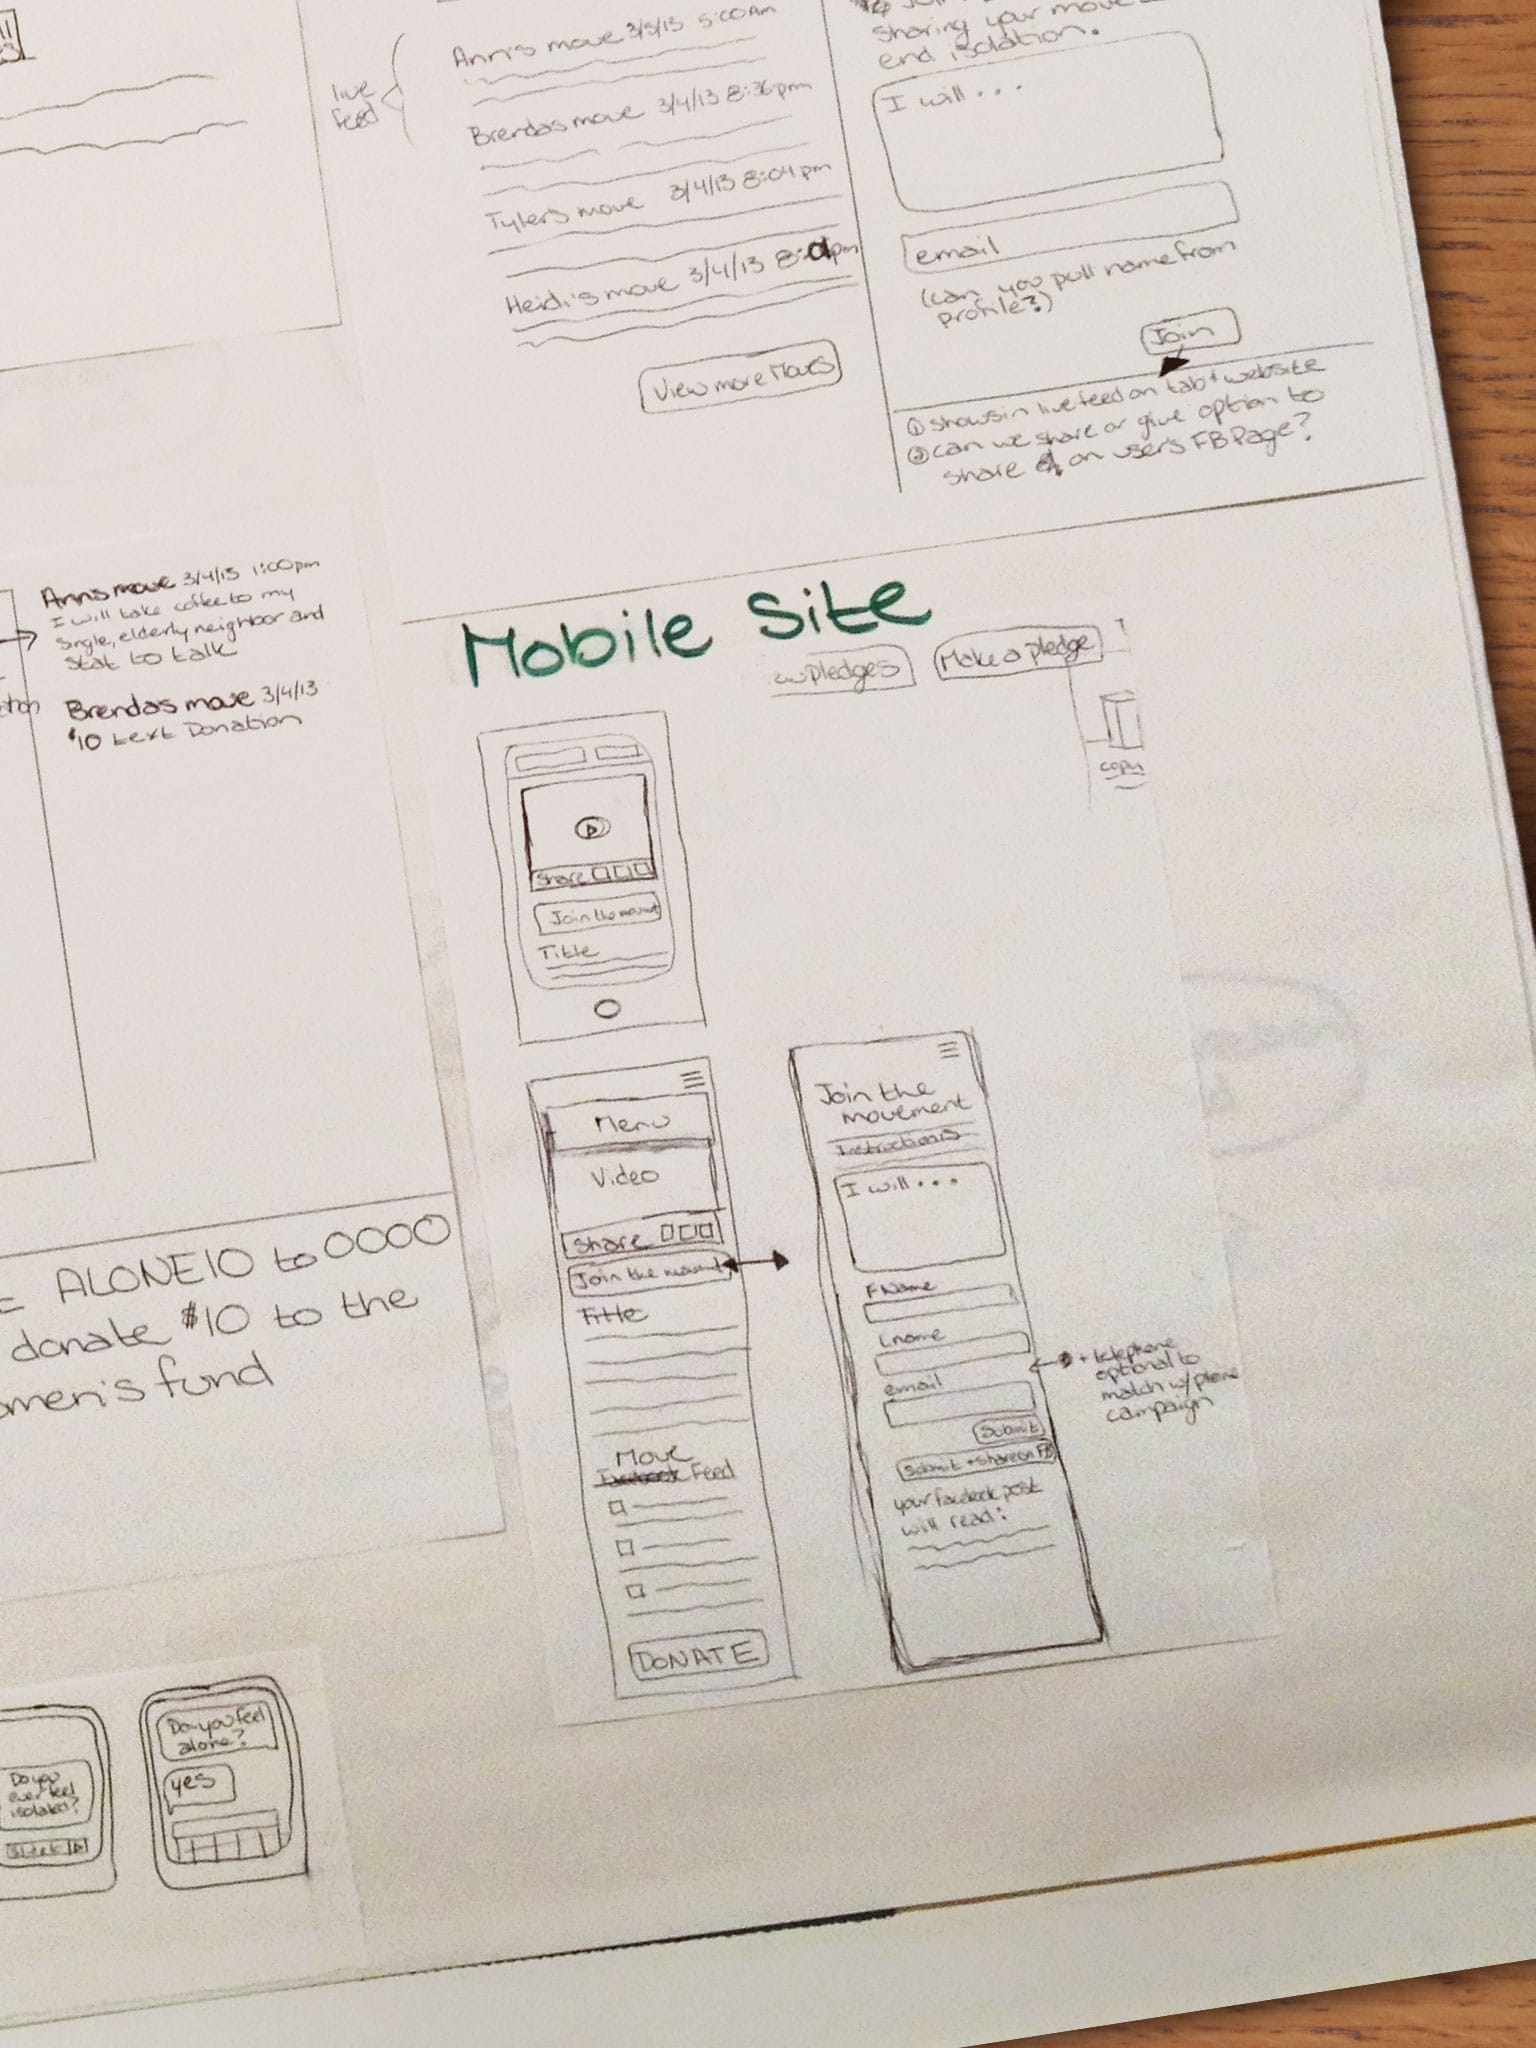 The strategy and purpose behind mobile apps